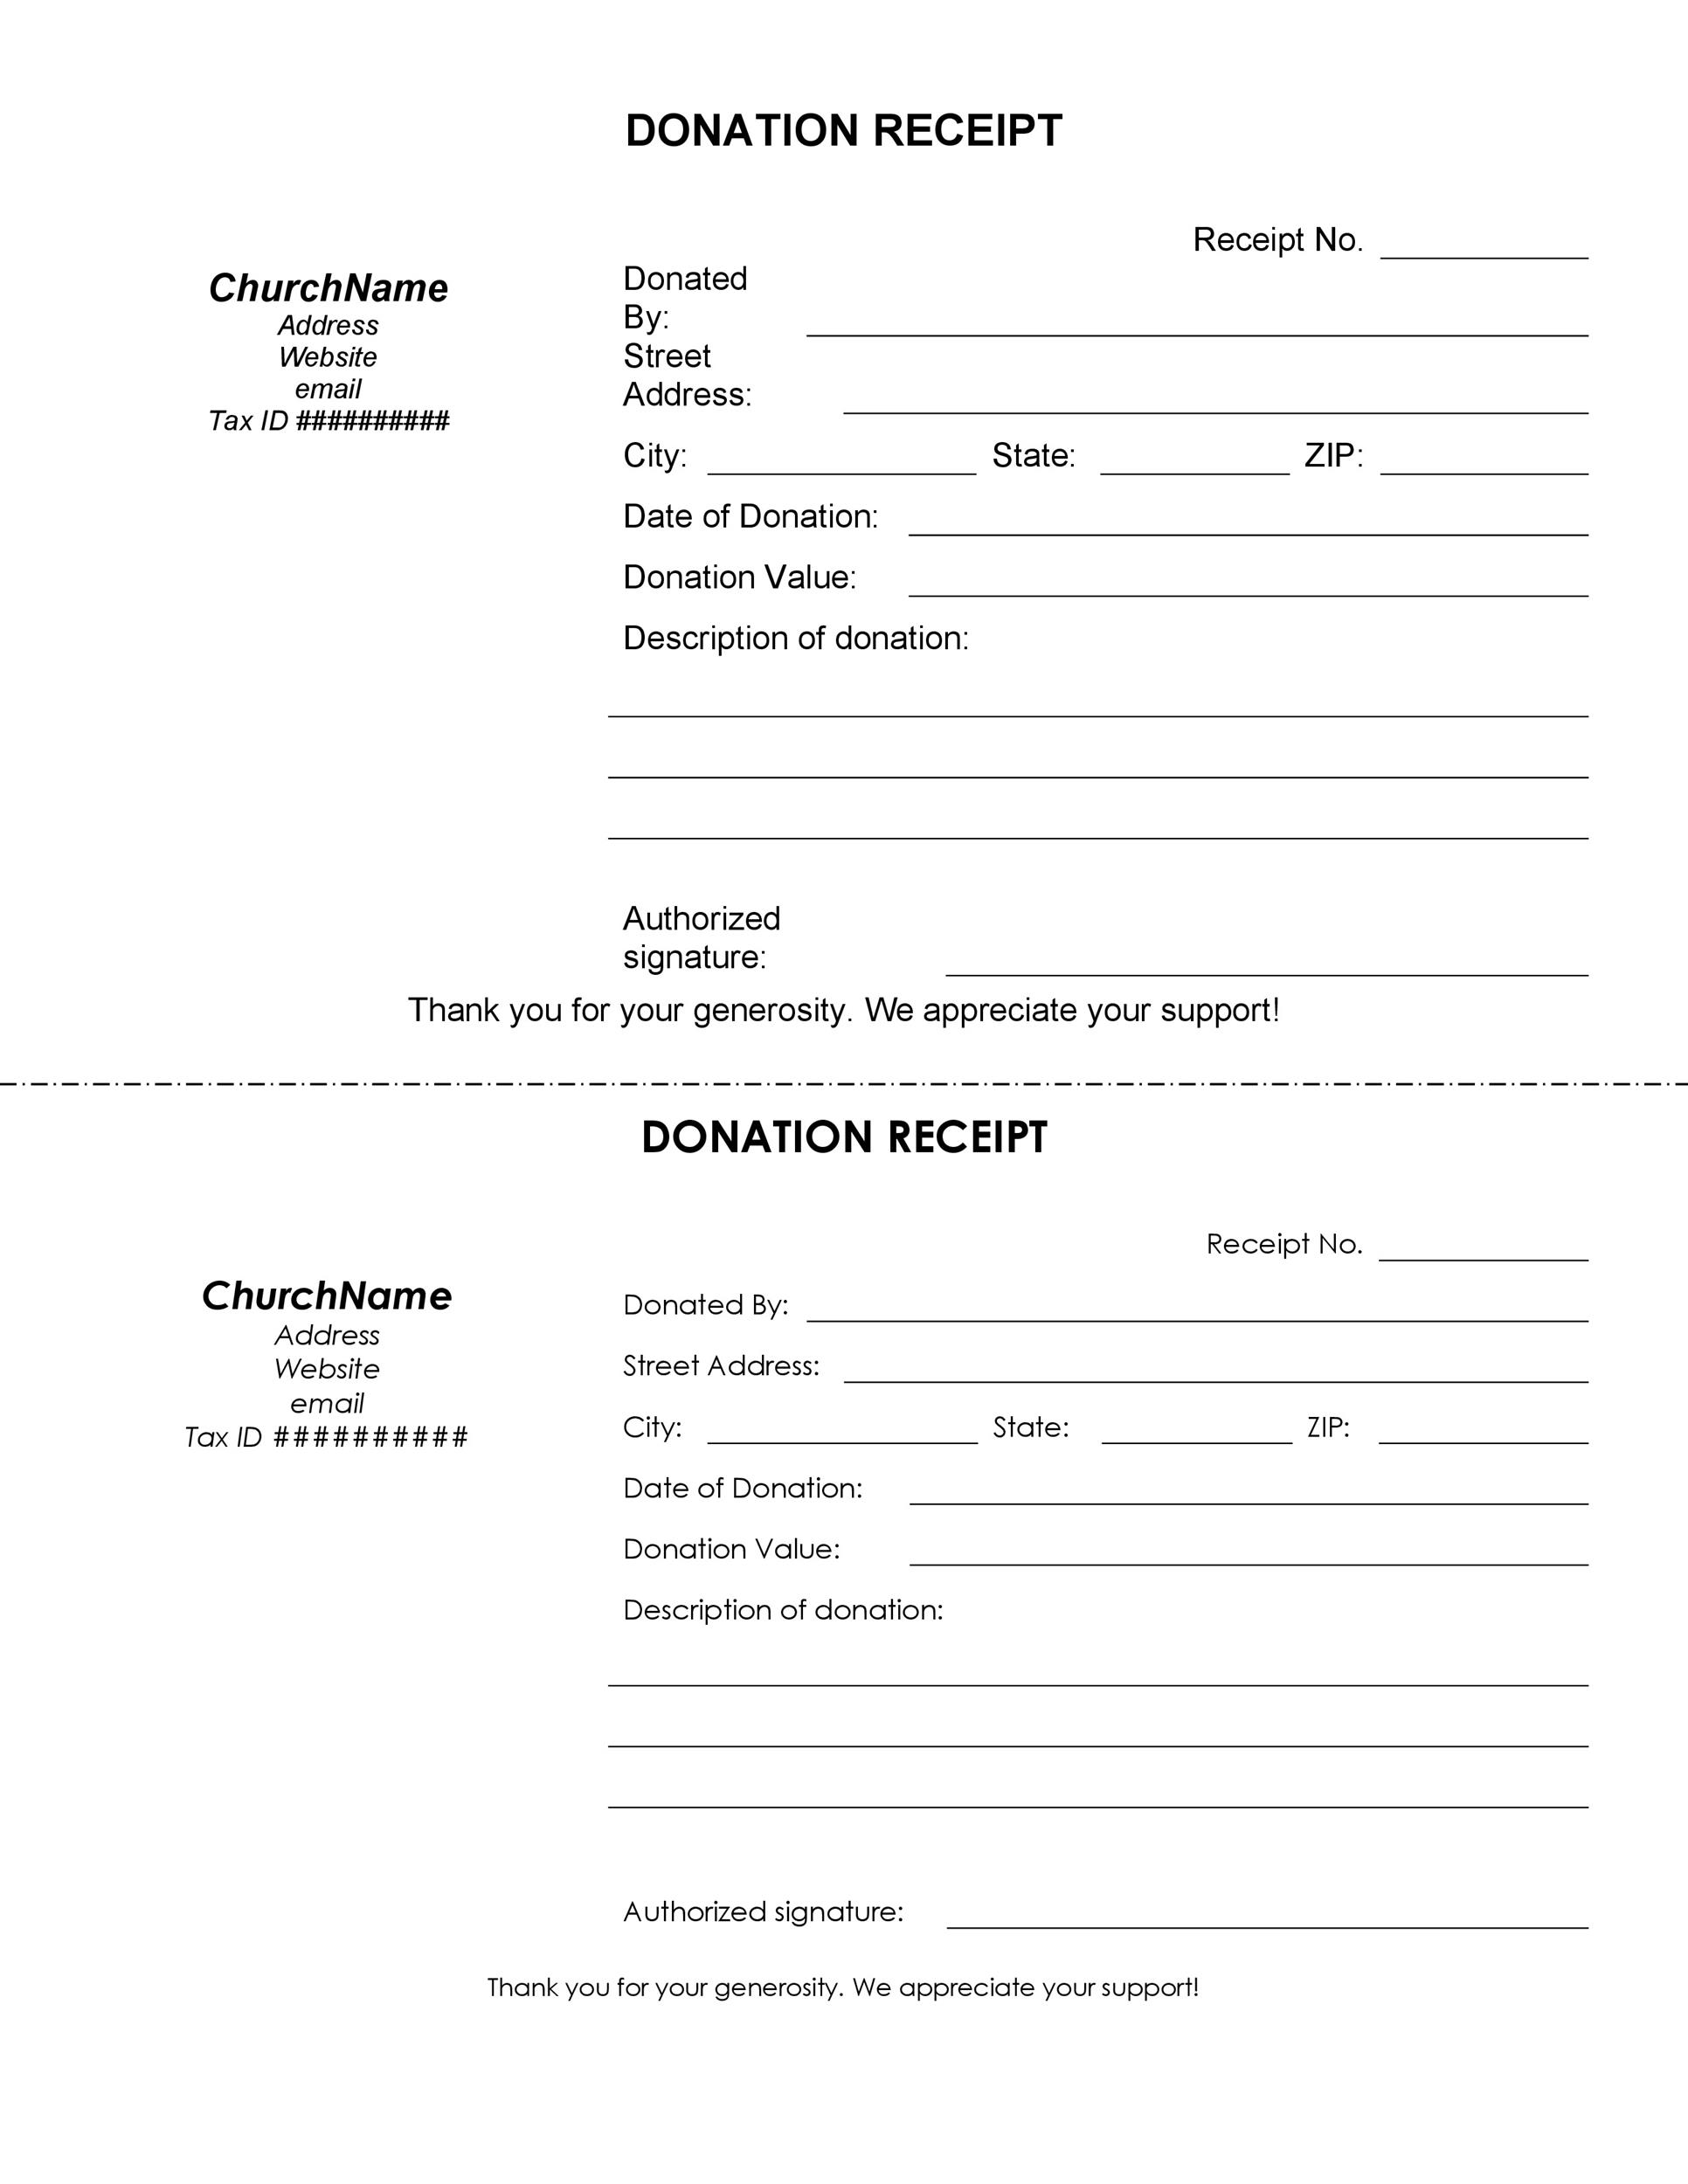 50 Free Receipt Templates Cash Sales Donation Taxi – Cash Sale Invoice Template